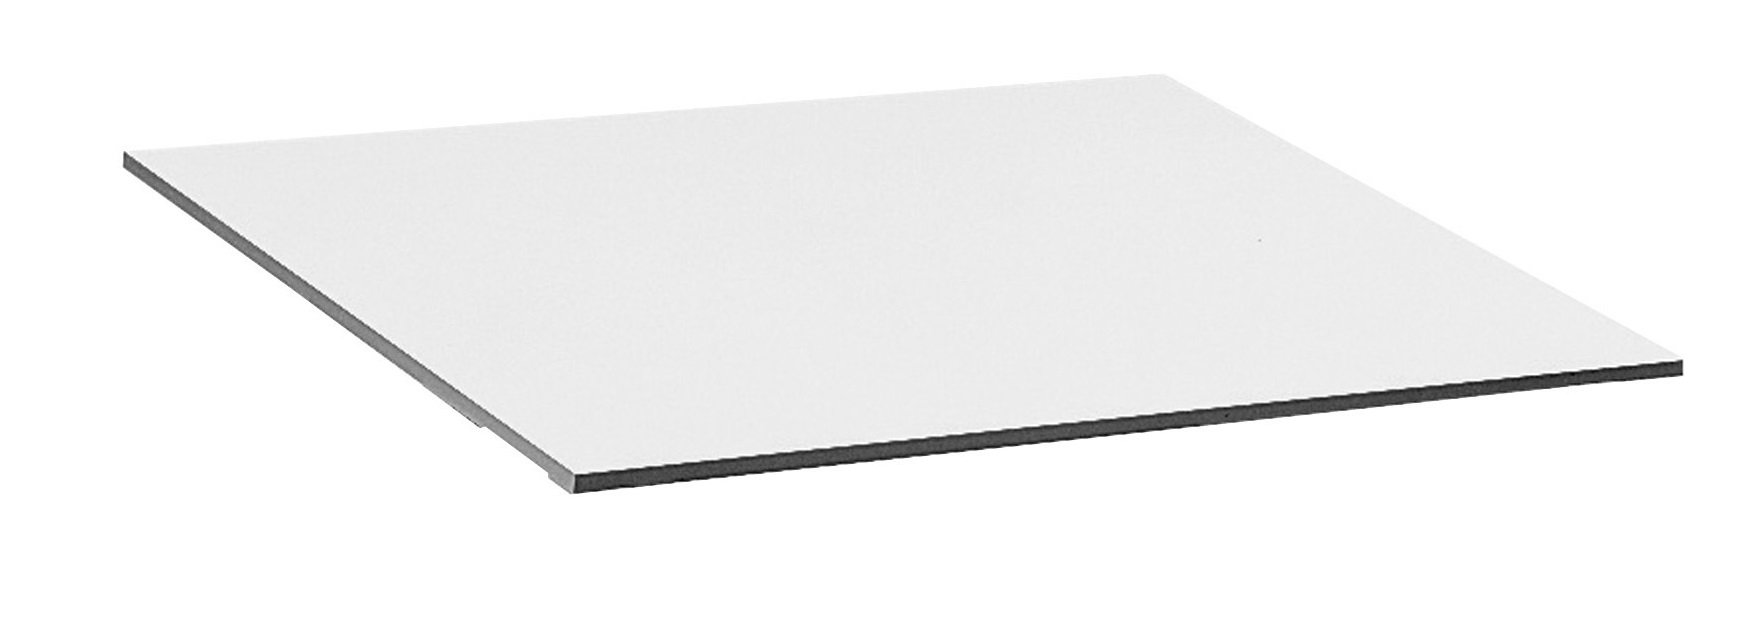 Safco Products 3951 Drafting and Drawing Table Top, 48'' x 36'' for Table Base 3957, 3960 or 3961, sold separately, White